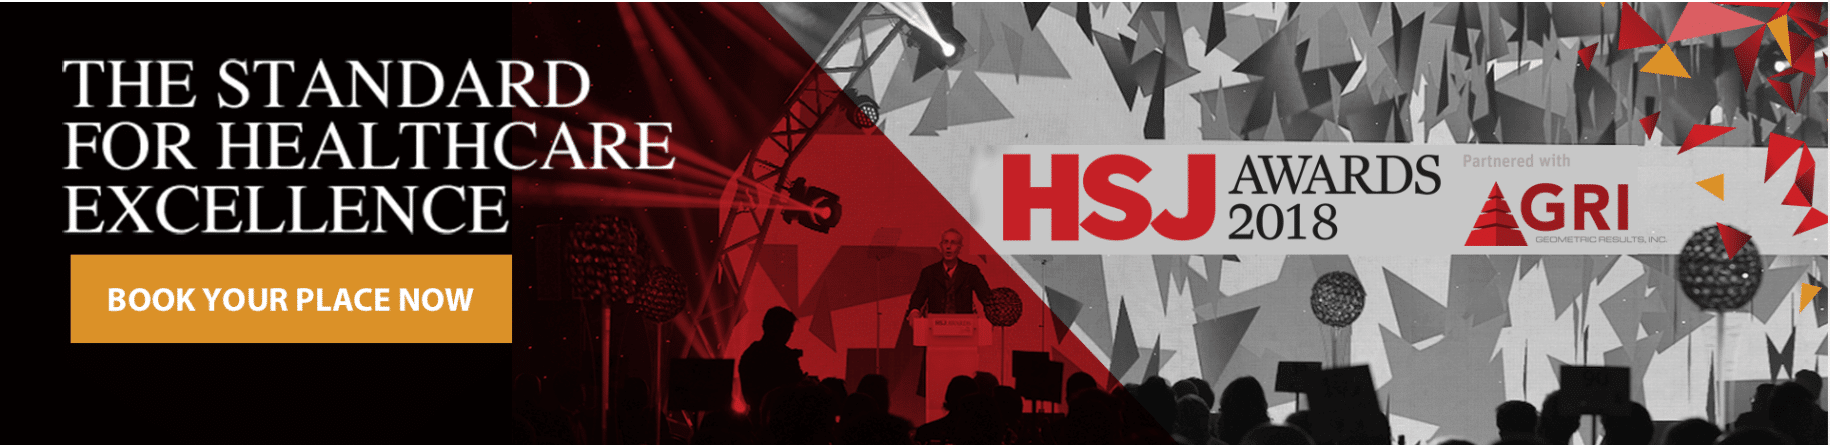 'Improving Care with Technology' Award Nomination for WHSCT at the 2018 HSJ Awards featured image